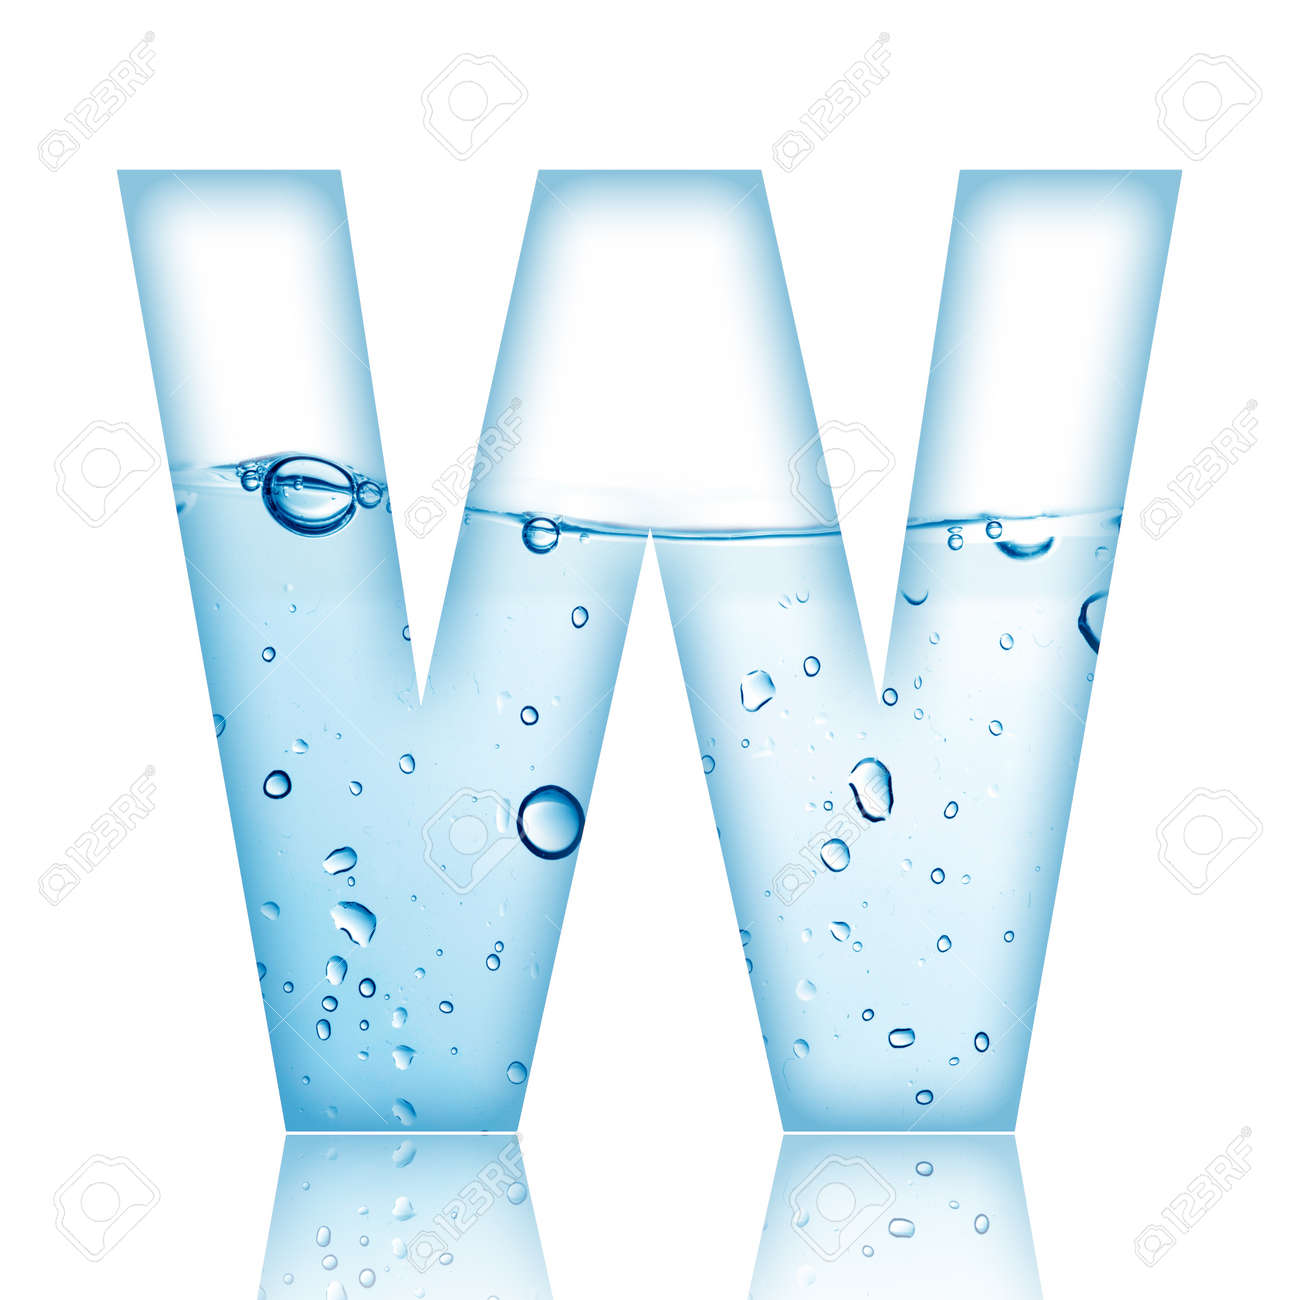 Water And Bubble Alphabet Letter With Reflection